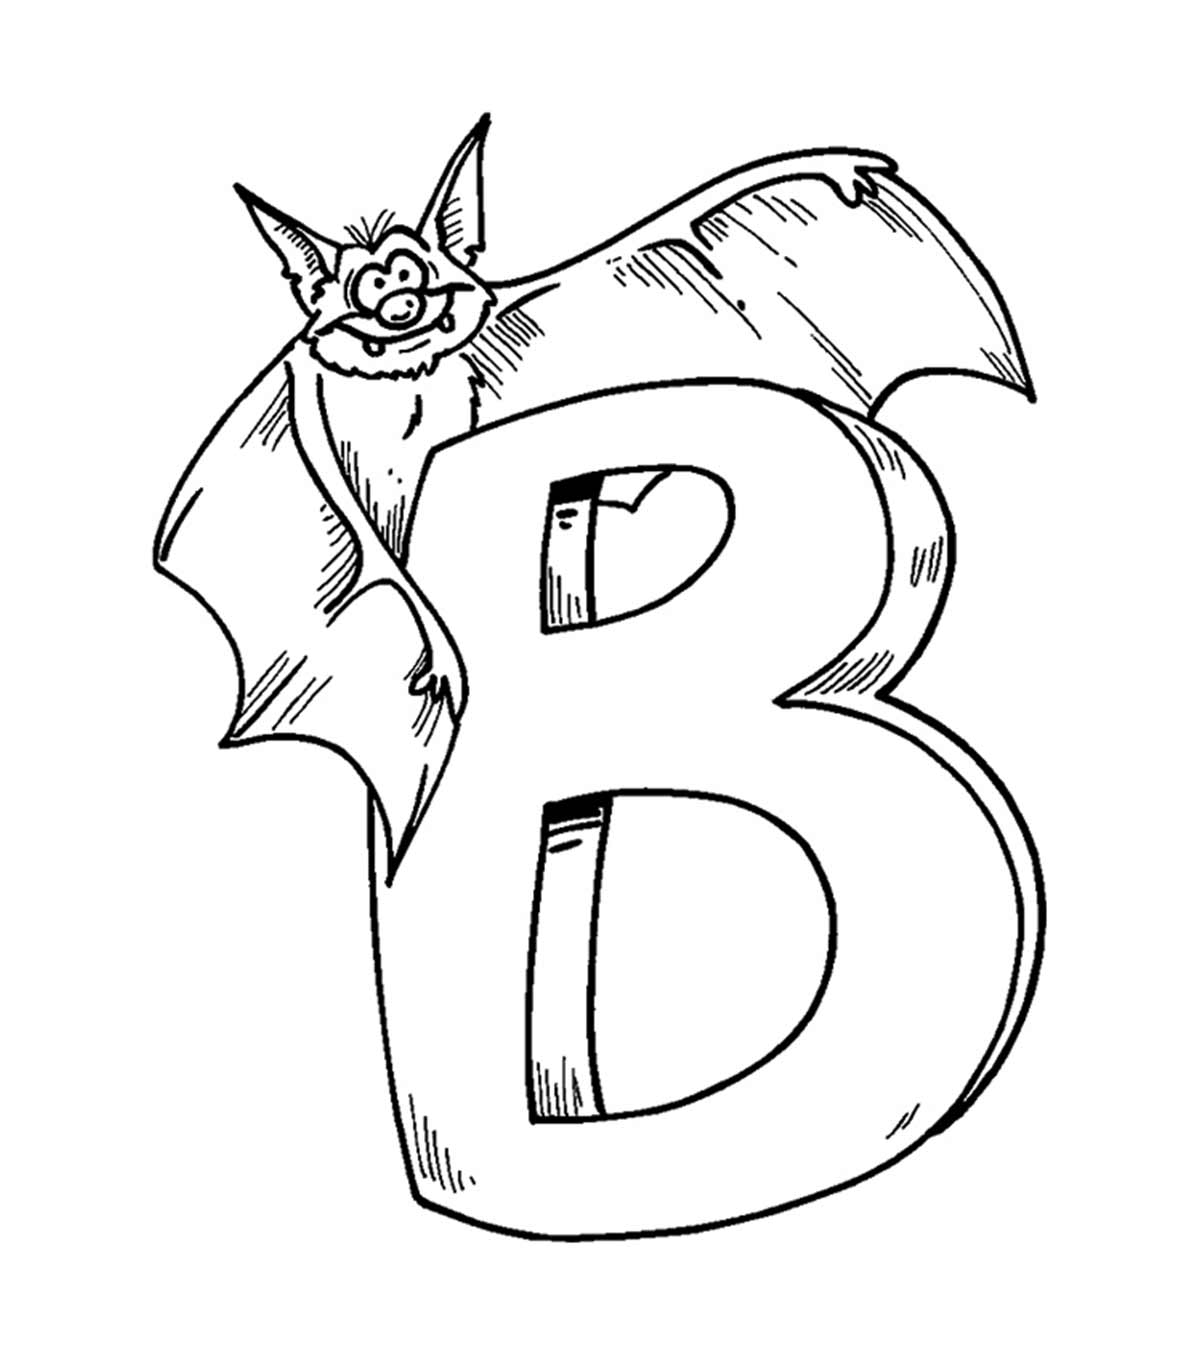 It's just an image of Printable Bats in black